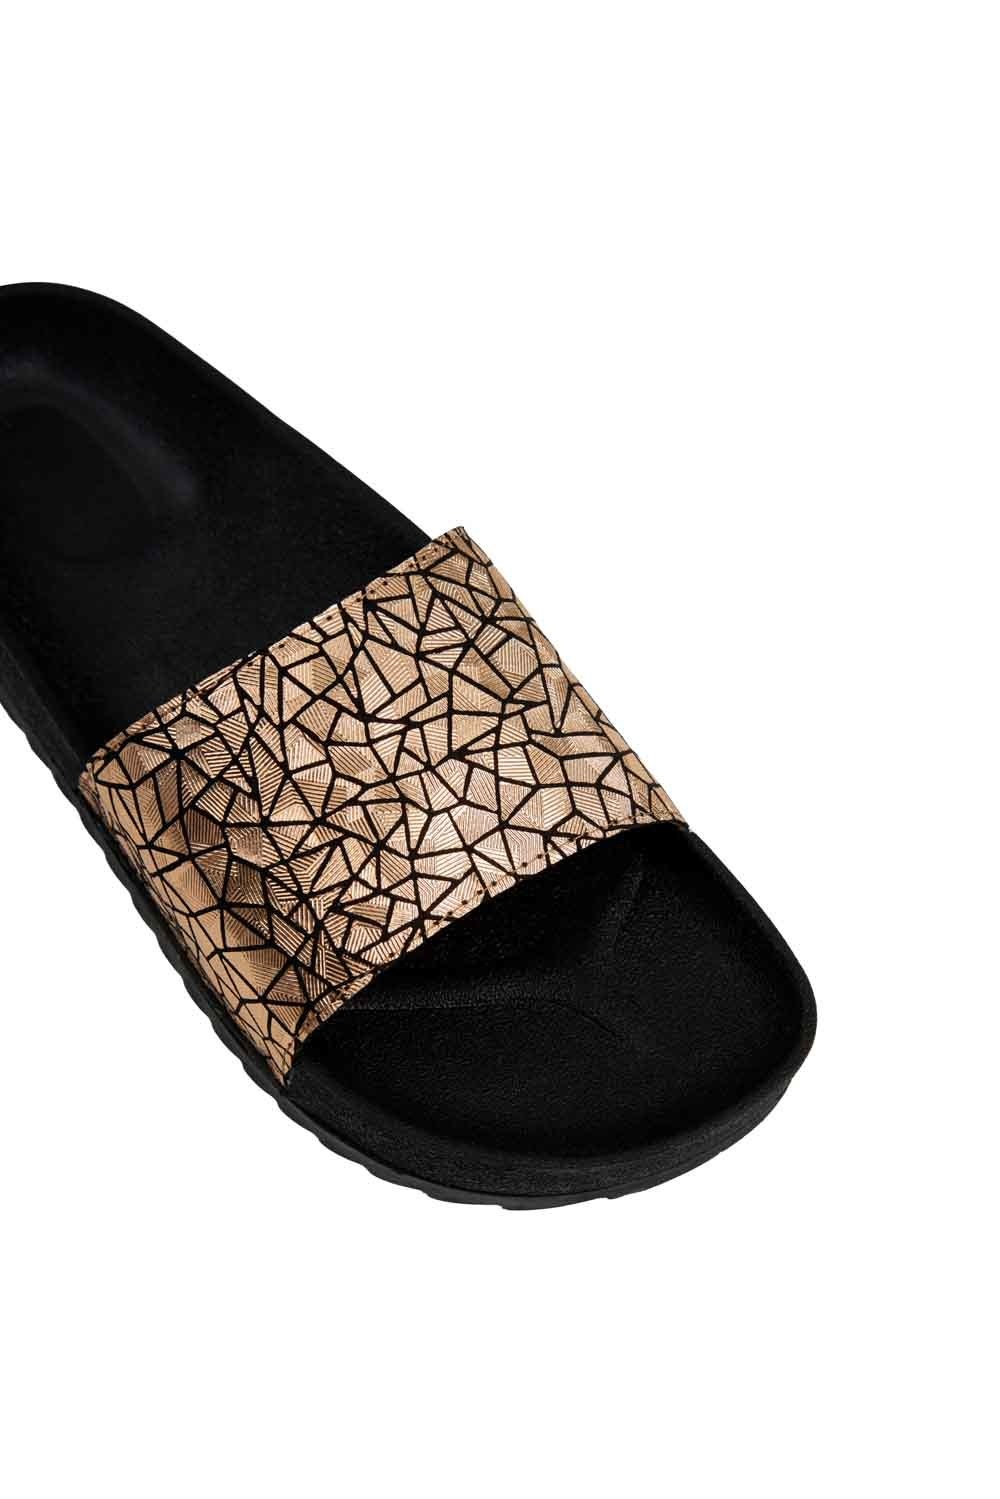 MIZALLE Soft Sole Slippers (Gold) (1)